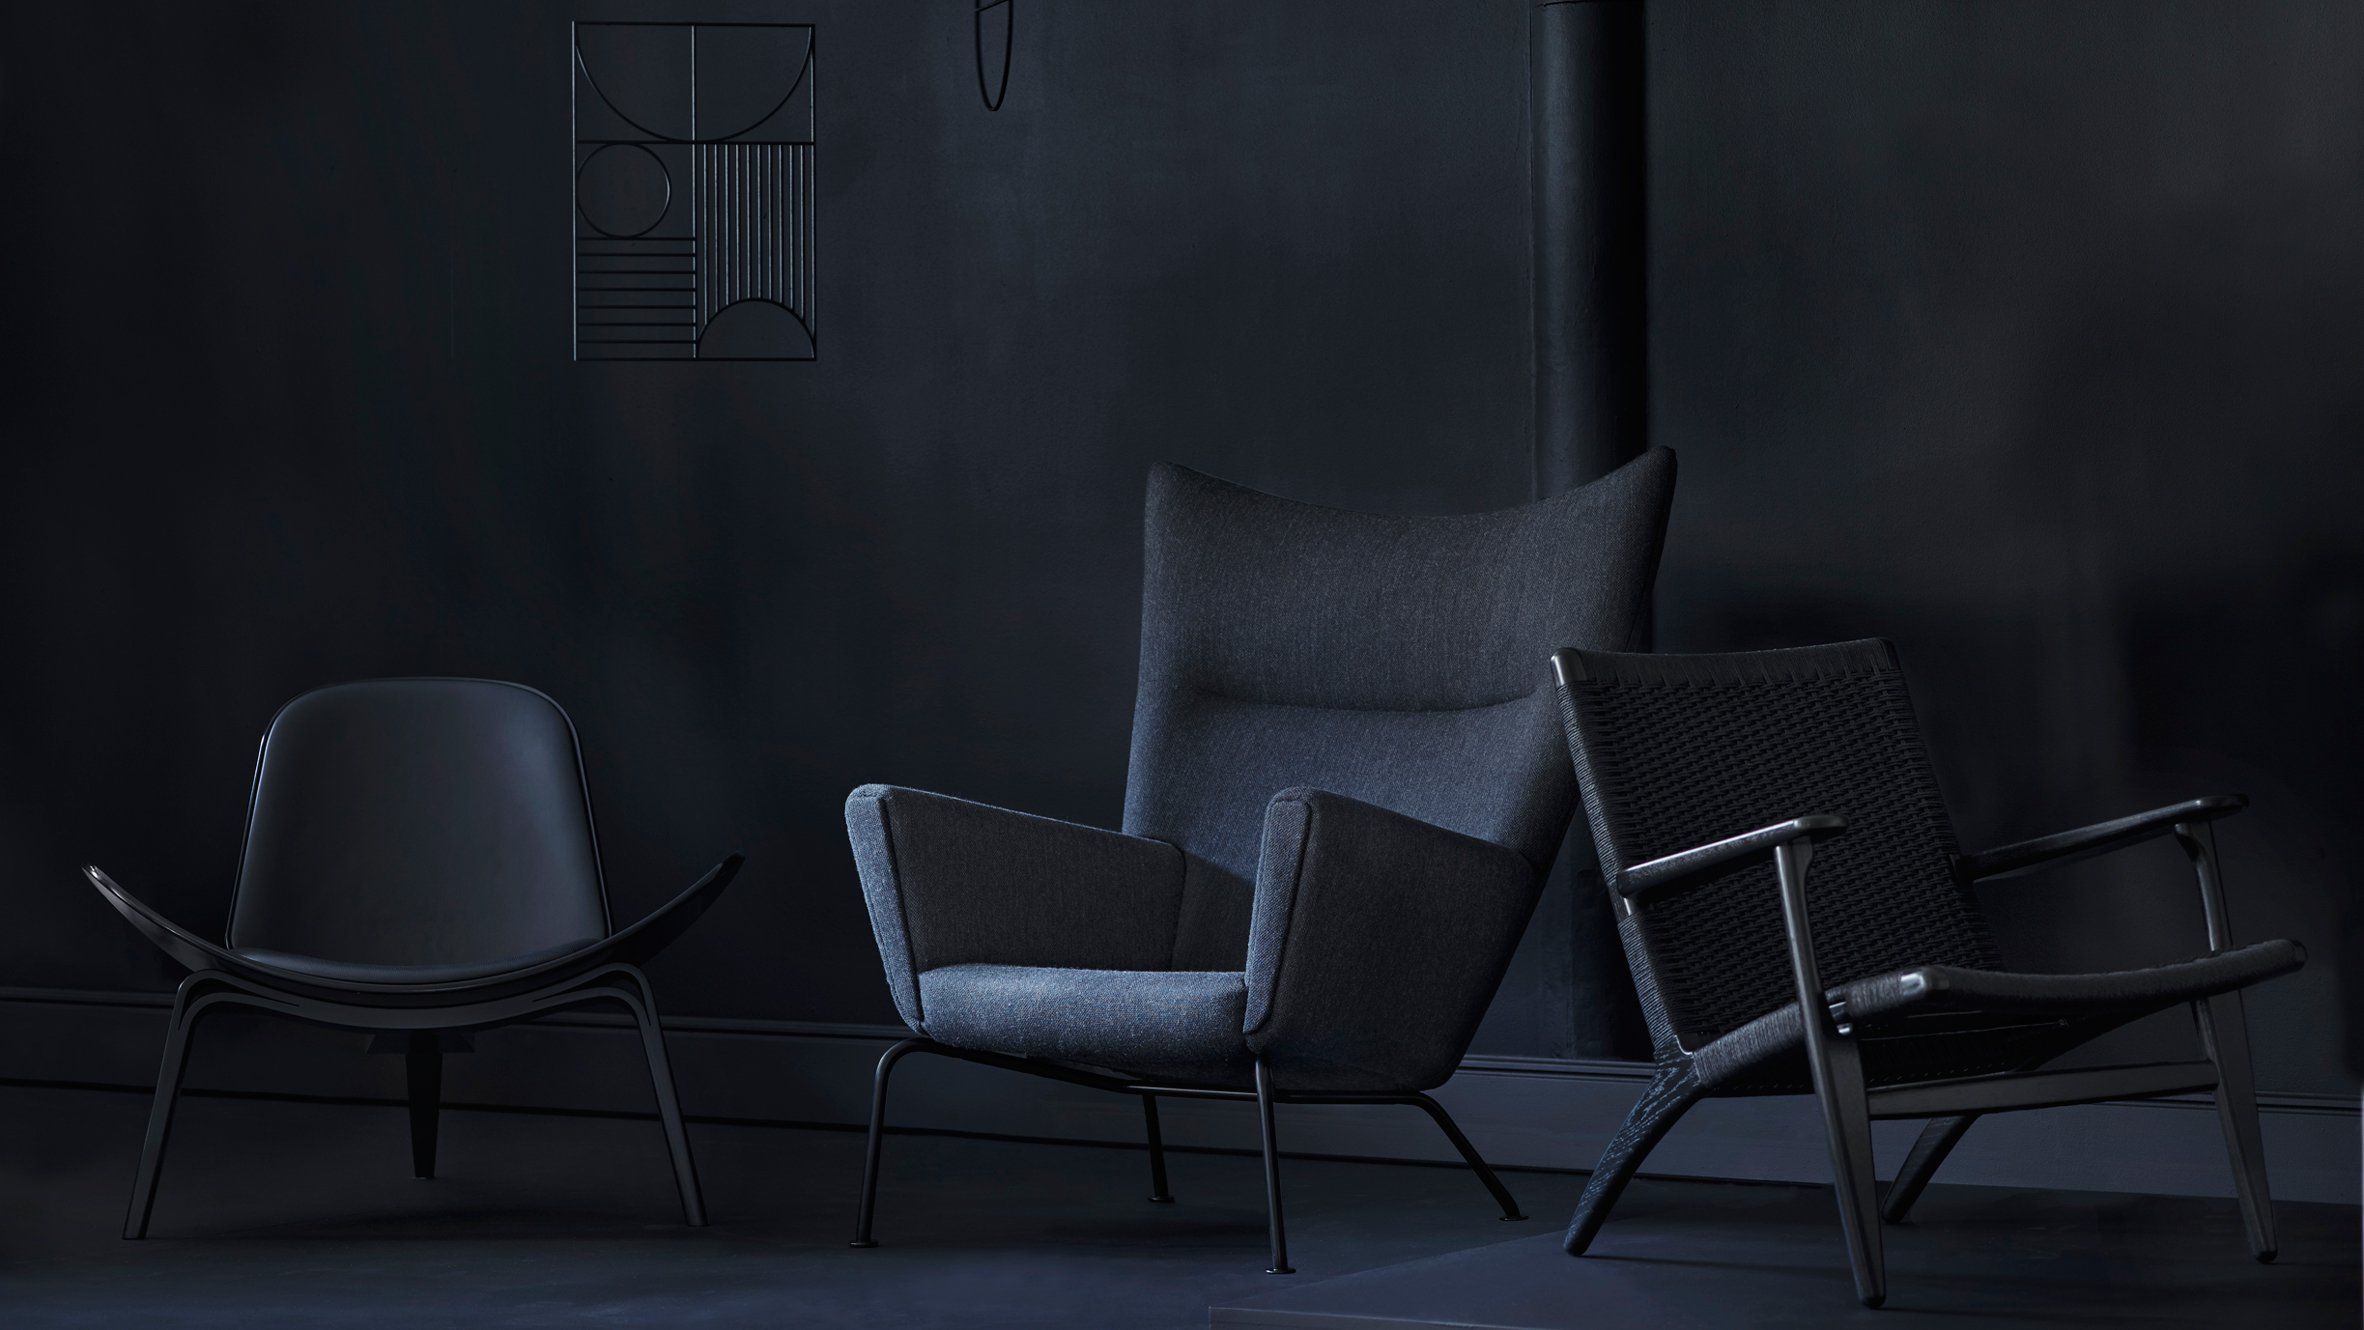 Wing chair and Oculus chair